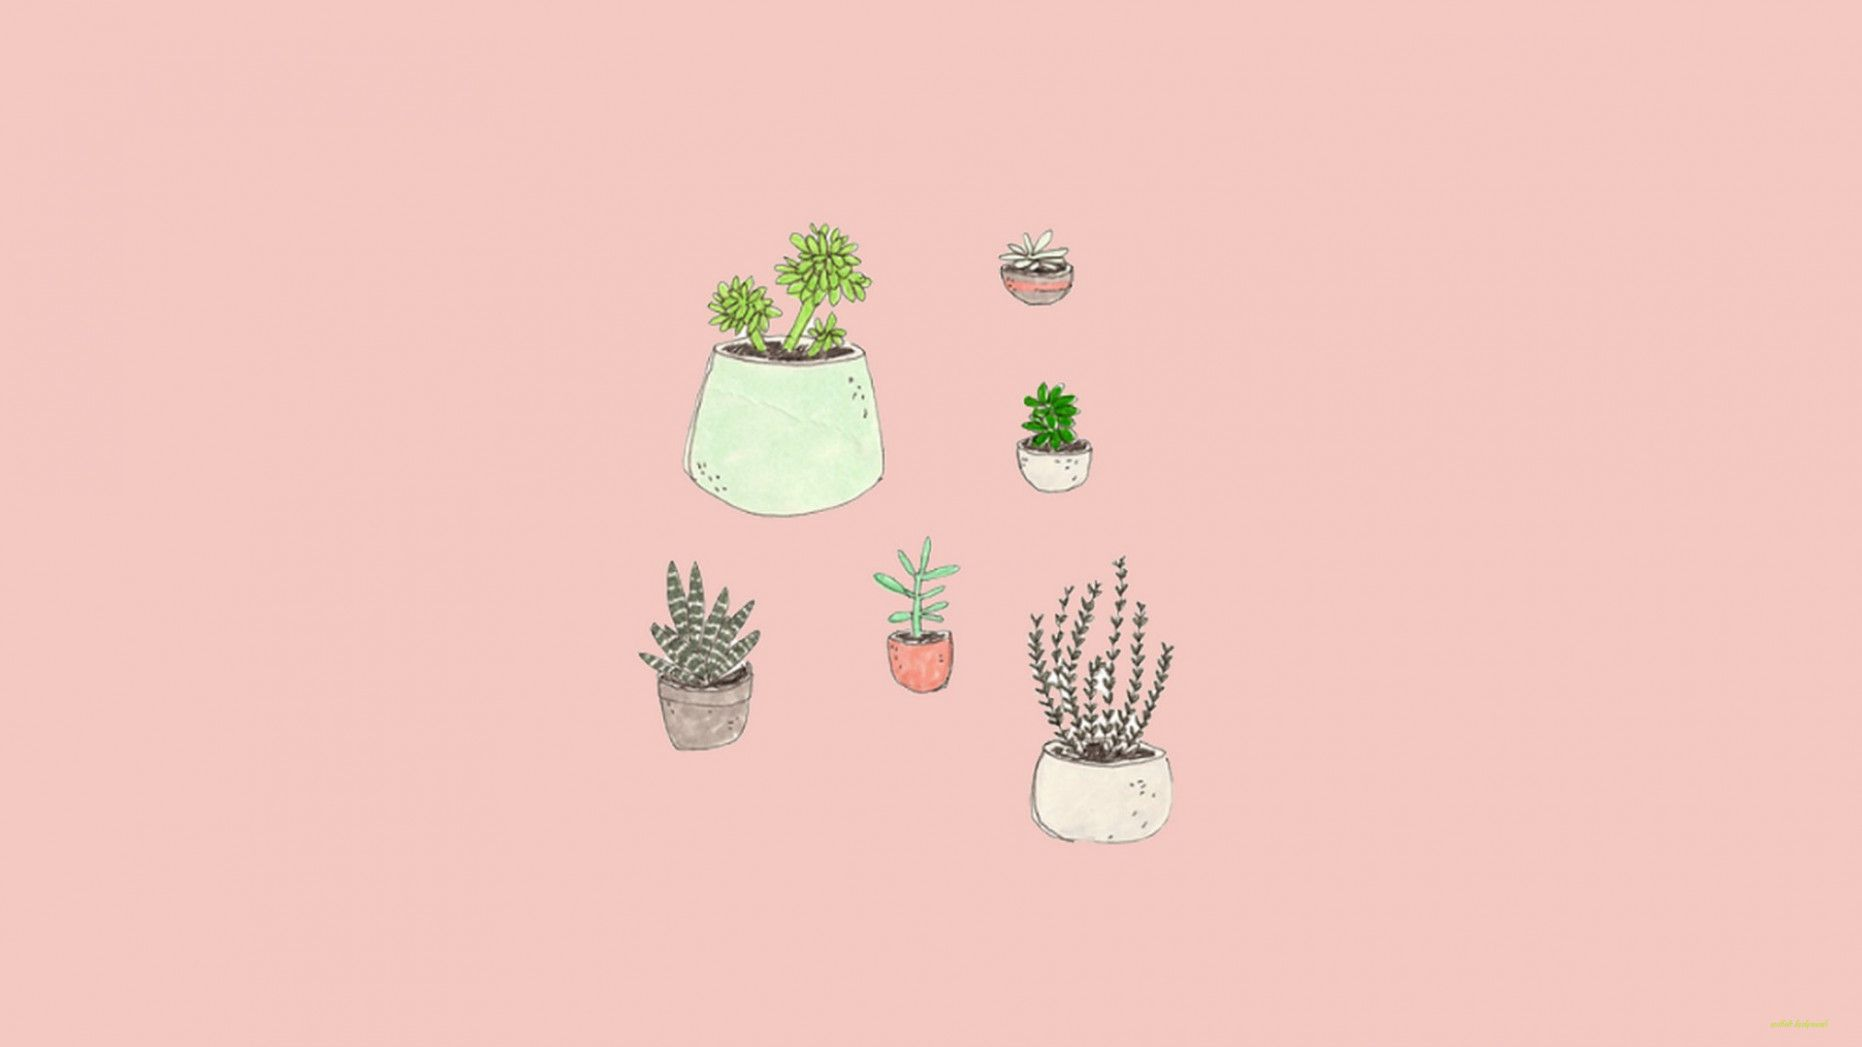 Cute Aesthetic Wallpapers For Laptop